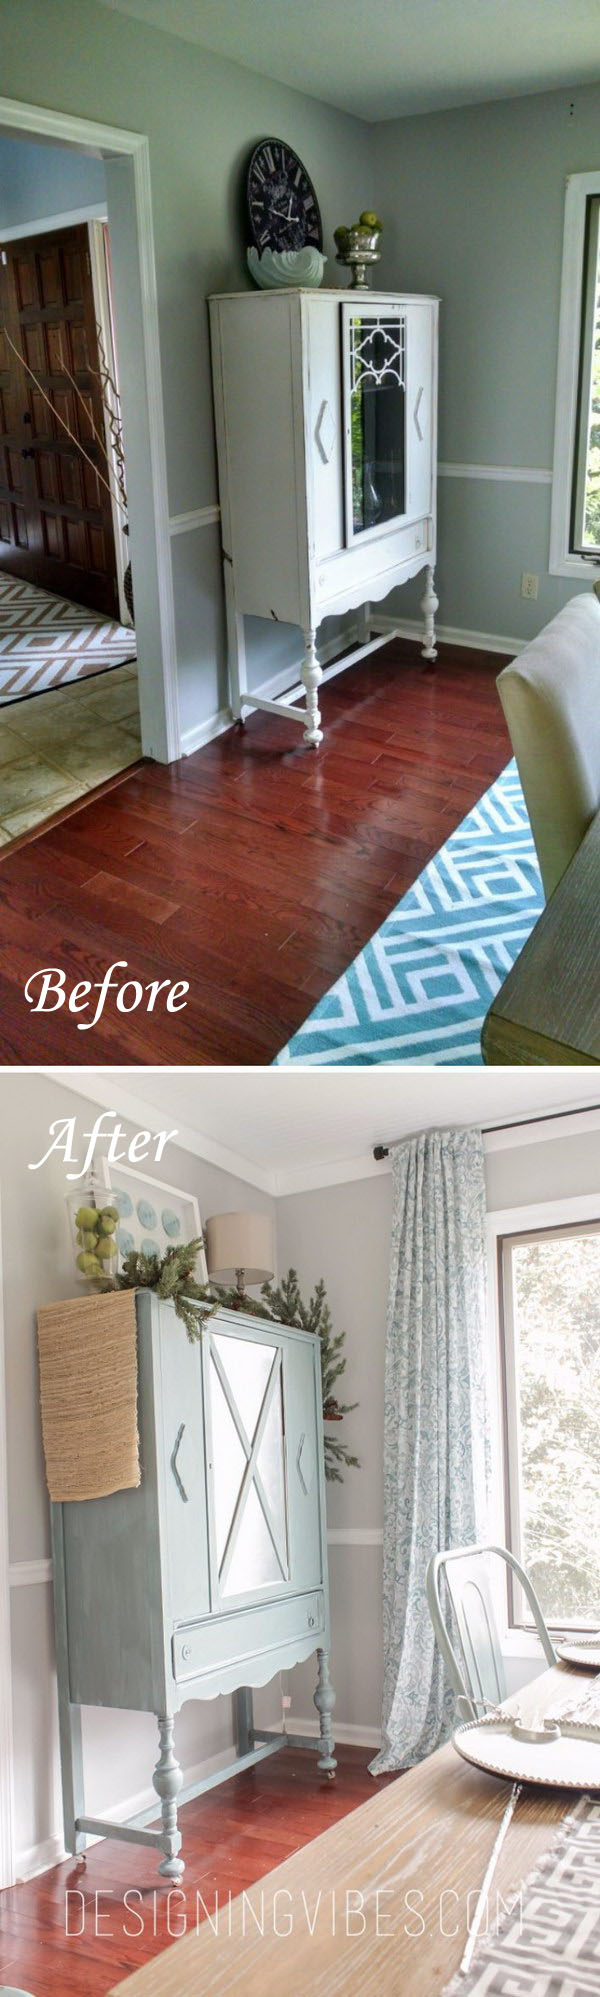 3-4-dining-room-makeover-ideas-tutorials